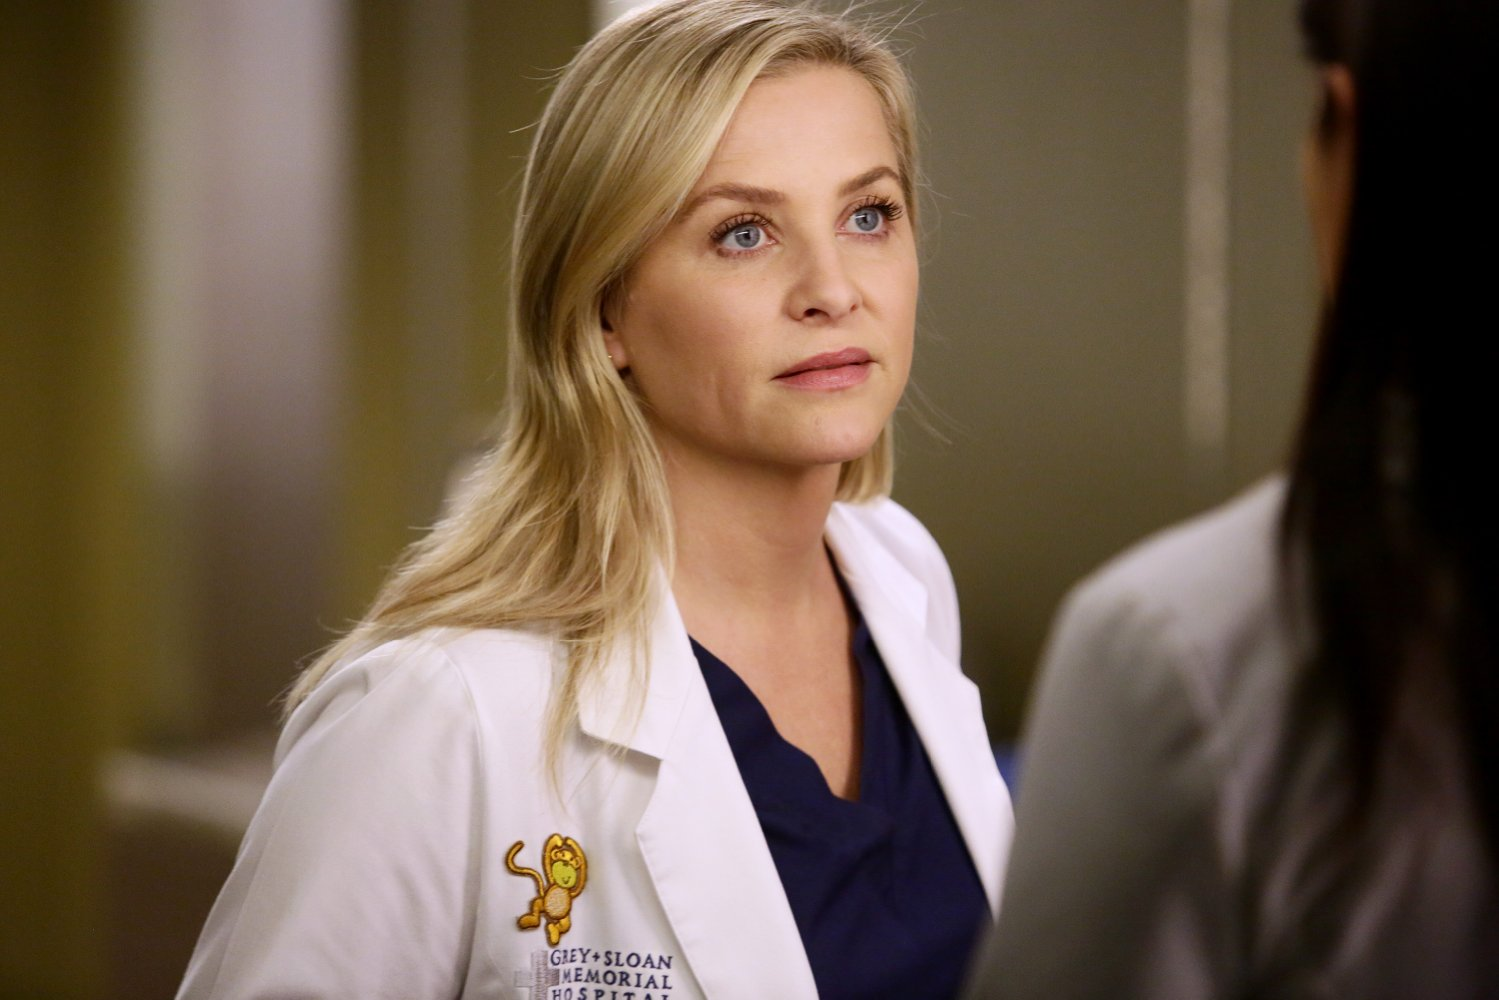 Greys Anatomy Actress Playing A Lesbian Has Changed My Life Pinknews